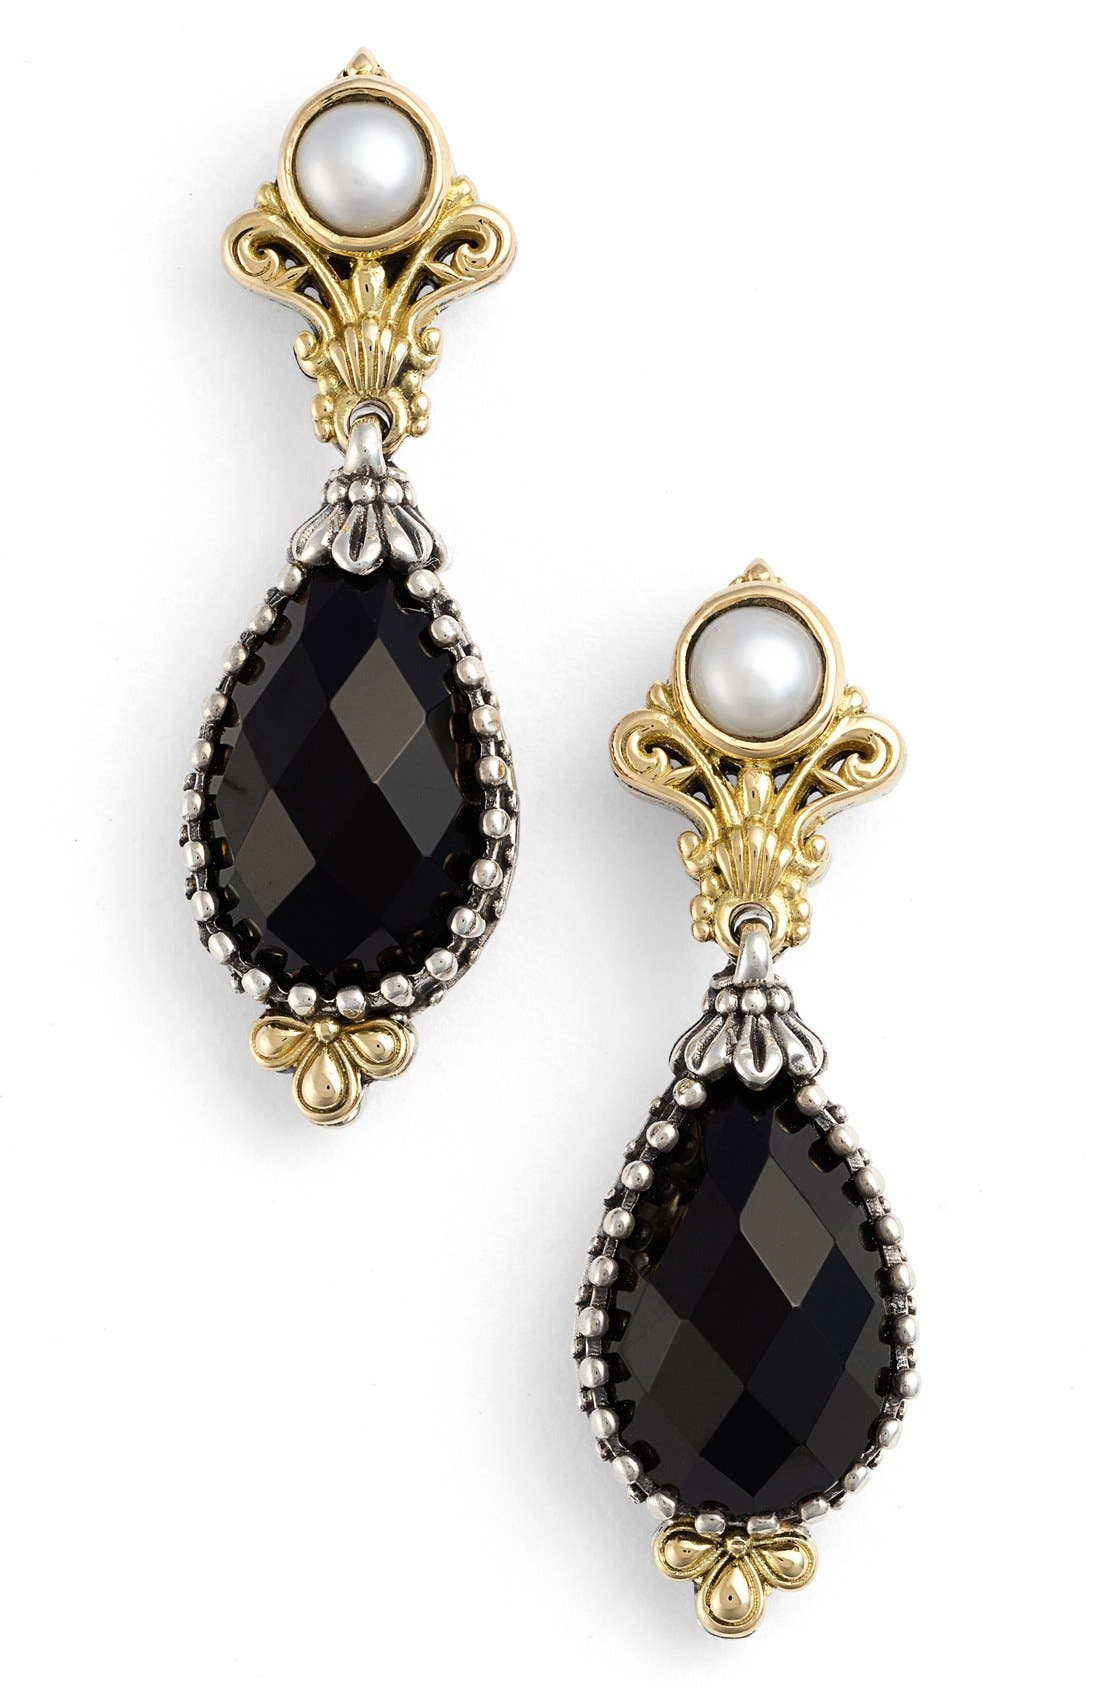 'Nykta' Pearl & Black Onyx Drop Earrings,                         Main,                         color, Silver/ Gold/ Pearl